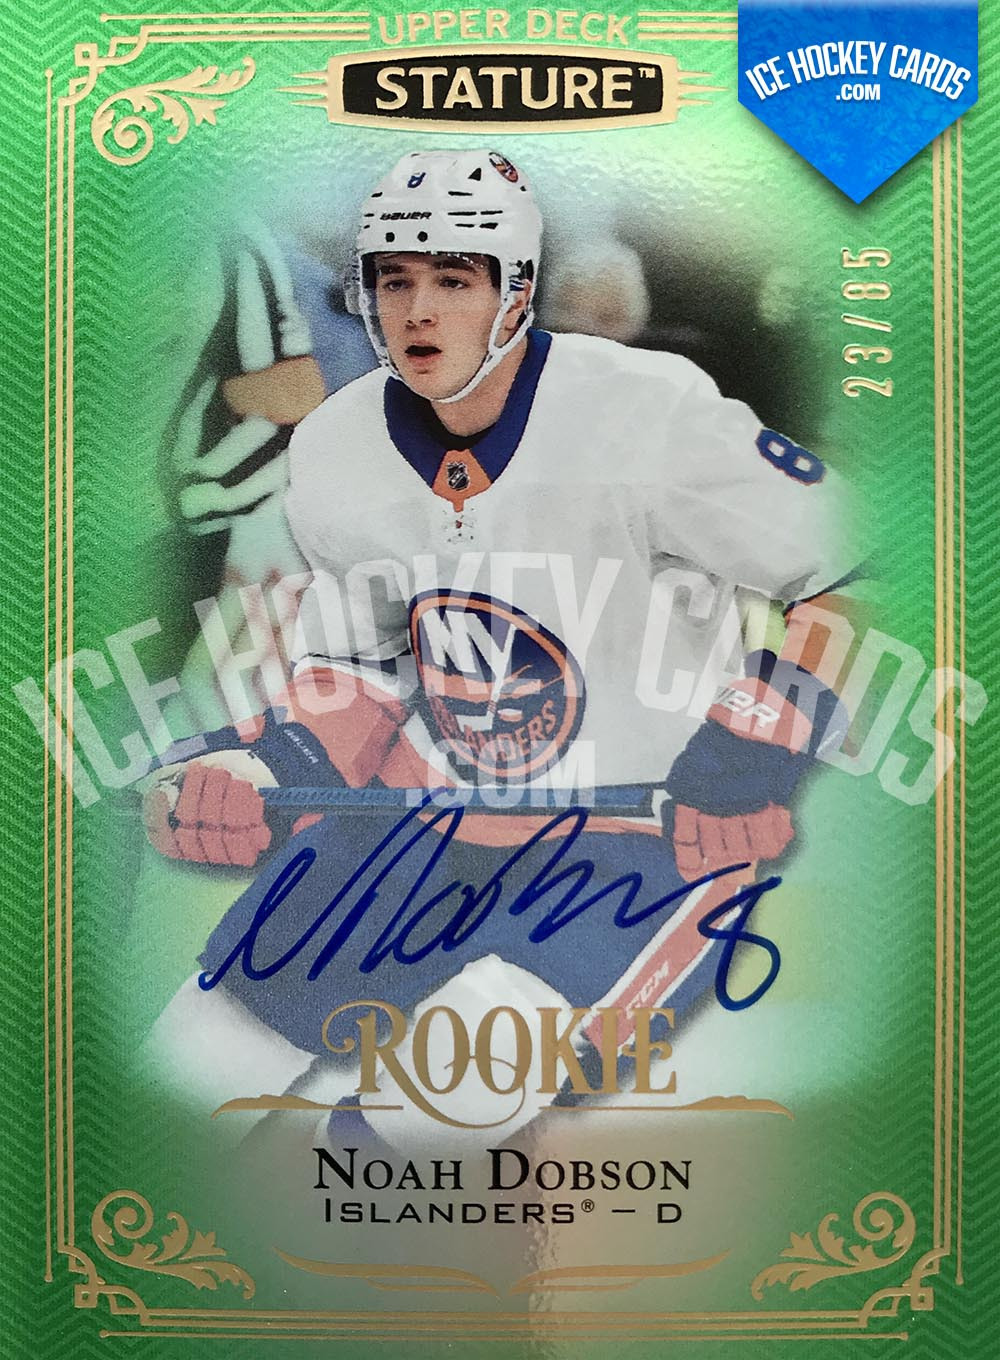 Upper Deck - Stature 2019-20 - Noah Dobson Autographed Rookie Card # to 85